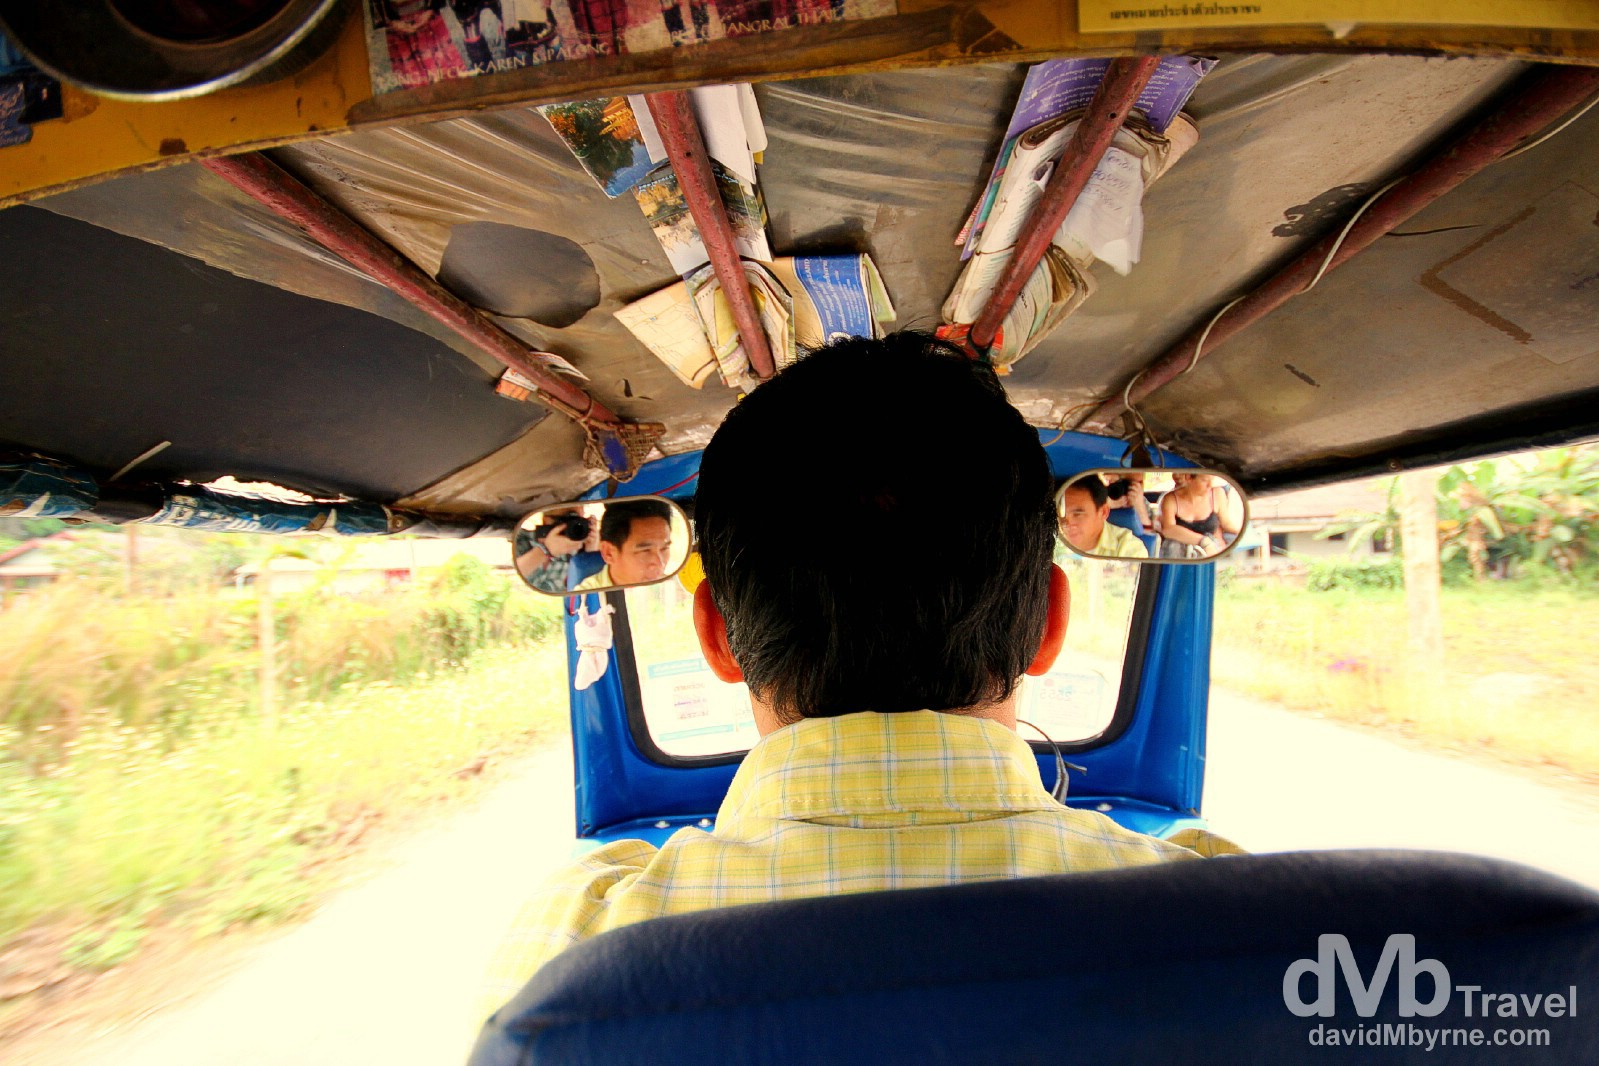 Tuk-tuk times en route from  Wat Rong Khun, aka The White Wat, to Chiang Rai, northern Thailand. March 11th 2012.